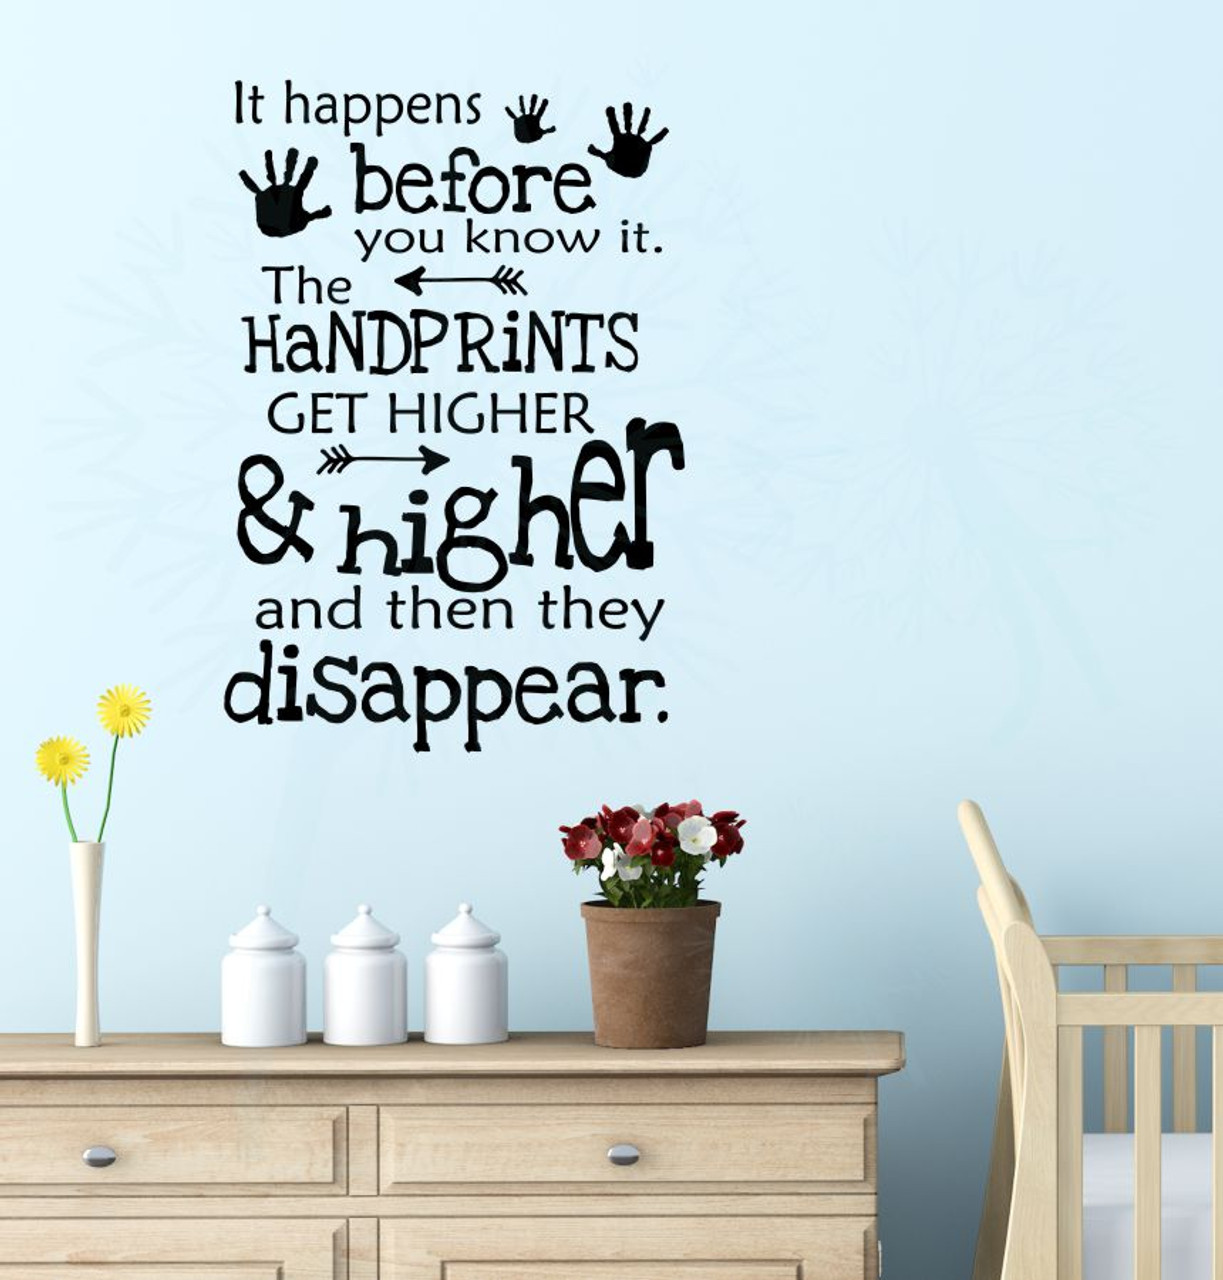 Handprints Get Higher Then Disappear Vinyl Lettering Art Wall Decal